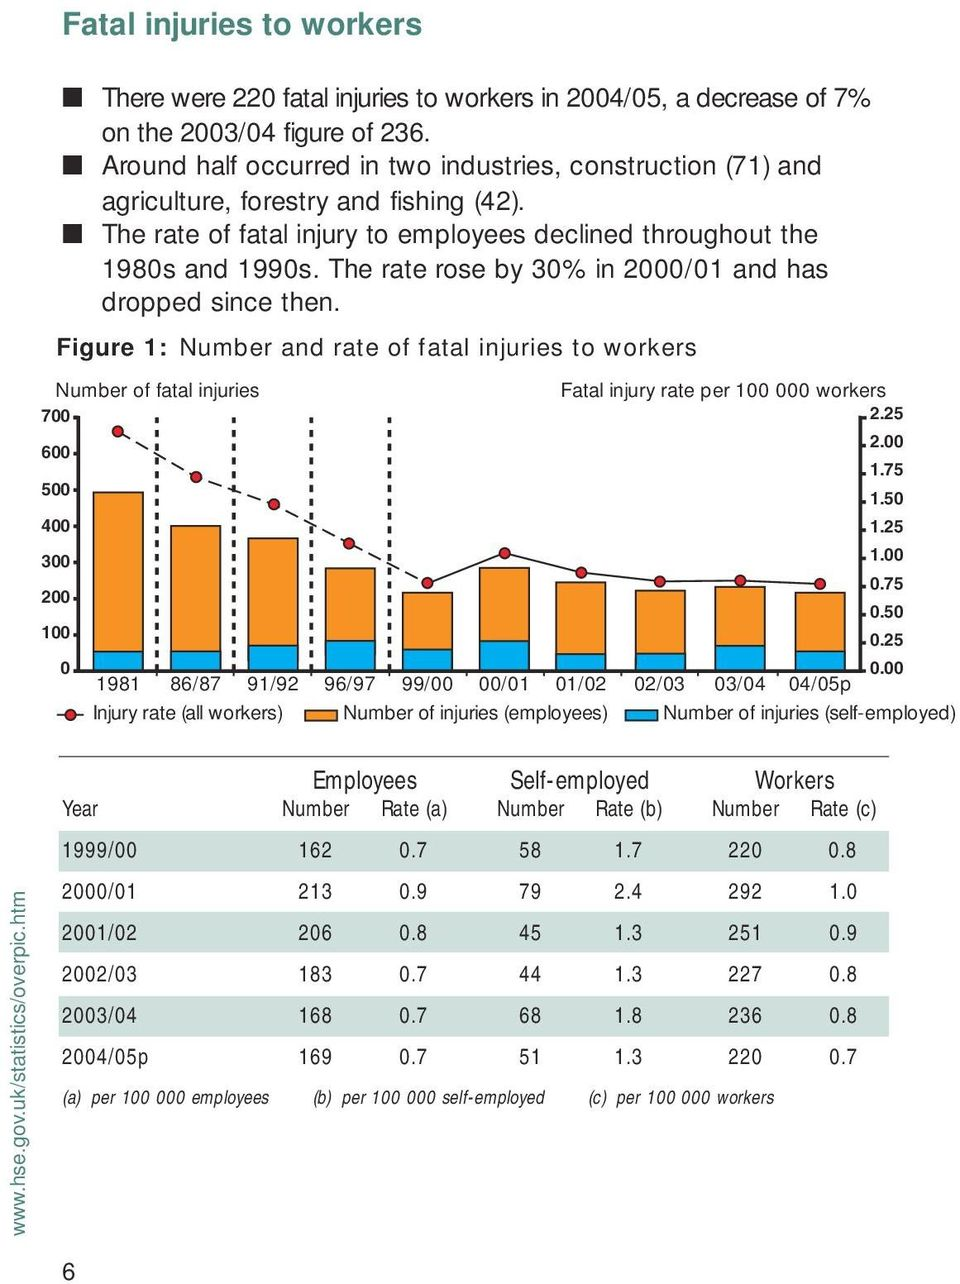 The rate of fatal injury to employees declined throughout the 1980s and 1990s. The rate rose by 30% in 2000/01 and has dropped since then.